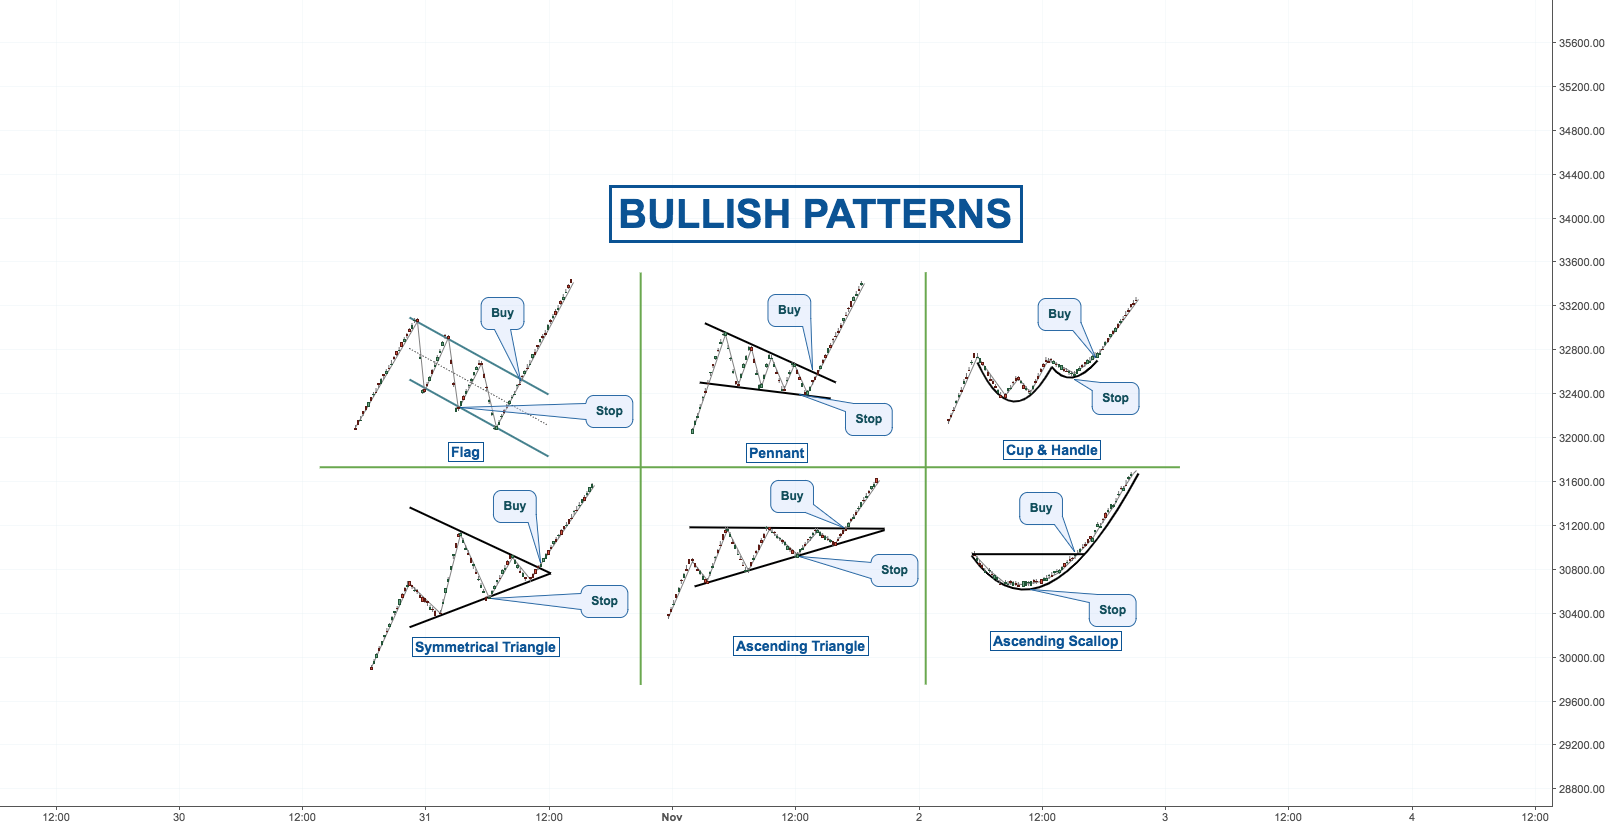 BULLISH PATTERNS IN TRADING